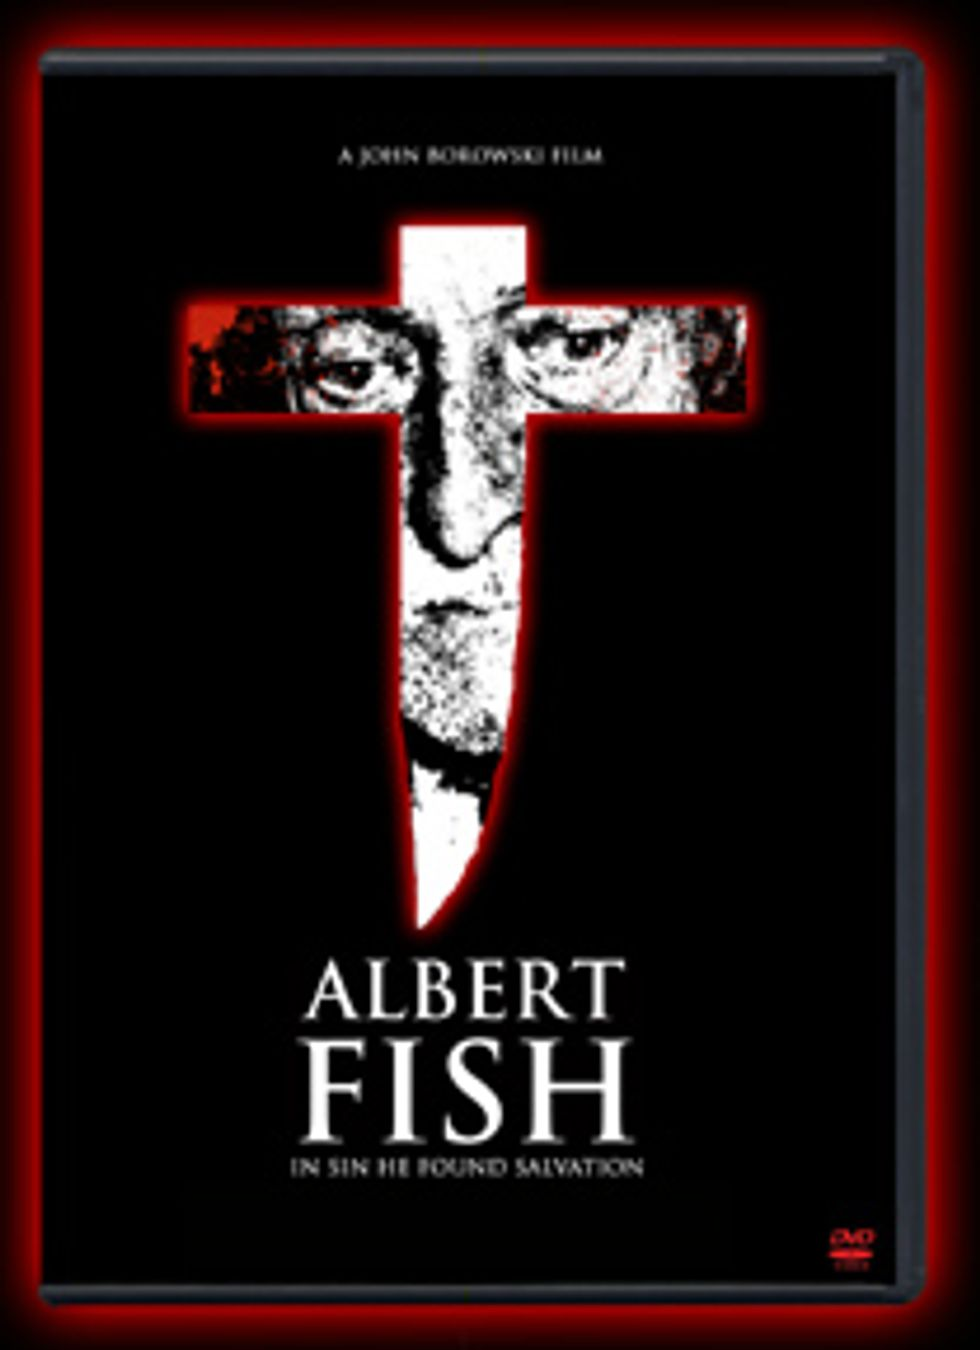 Albert Fish, Beloved Cannibal